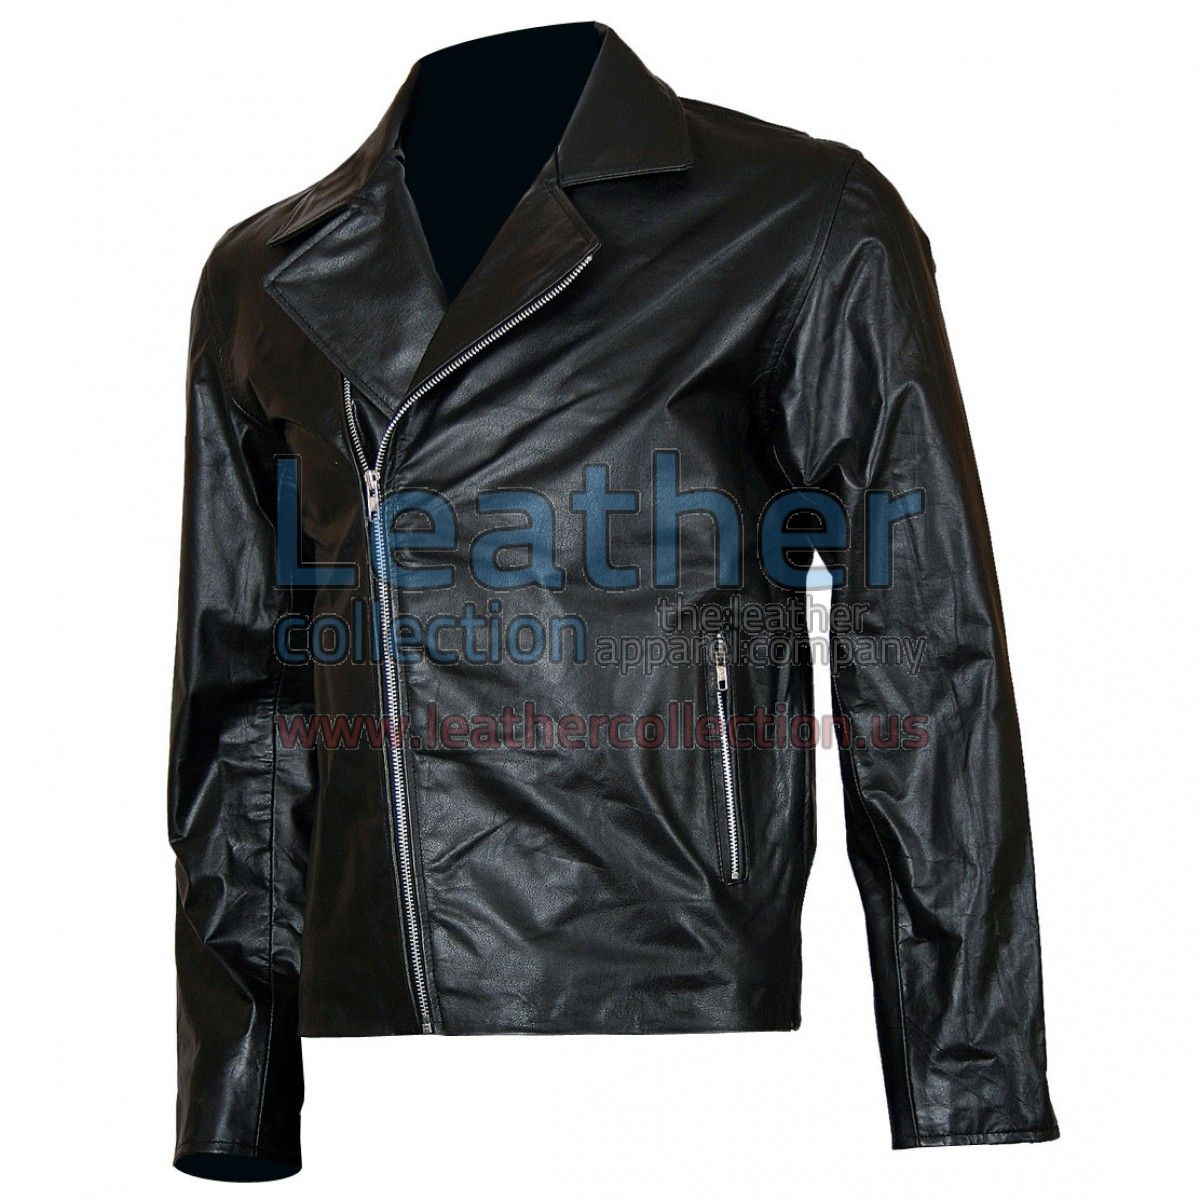 Ghost Rider Biker Leather Jacket, This leather motorcycle jacket worn by Nicolas Cage in the movie Ghost Rider. This Racing leather jacket is slightly bent forward slide in silver genuine YKK zippers with wide collar has a distinctive design. also two angular zip pockets keep your hands warm, zippered cuffs with straps, bi-swing back. it is made of 100% genuine leather, which gives all the flexibility you need, plus the strength to most of the functions